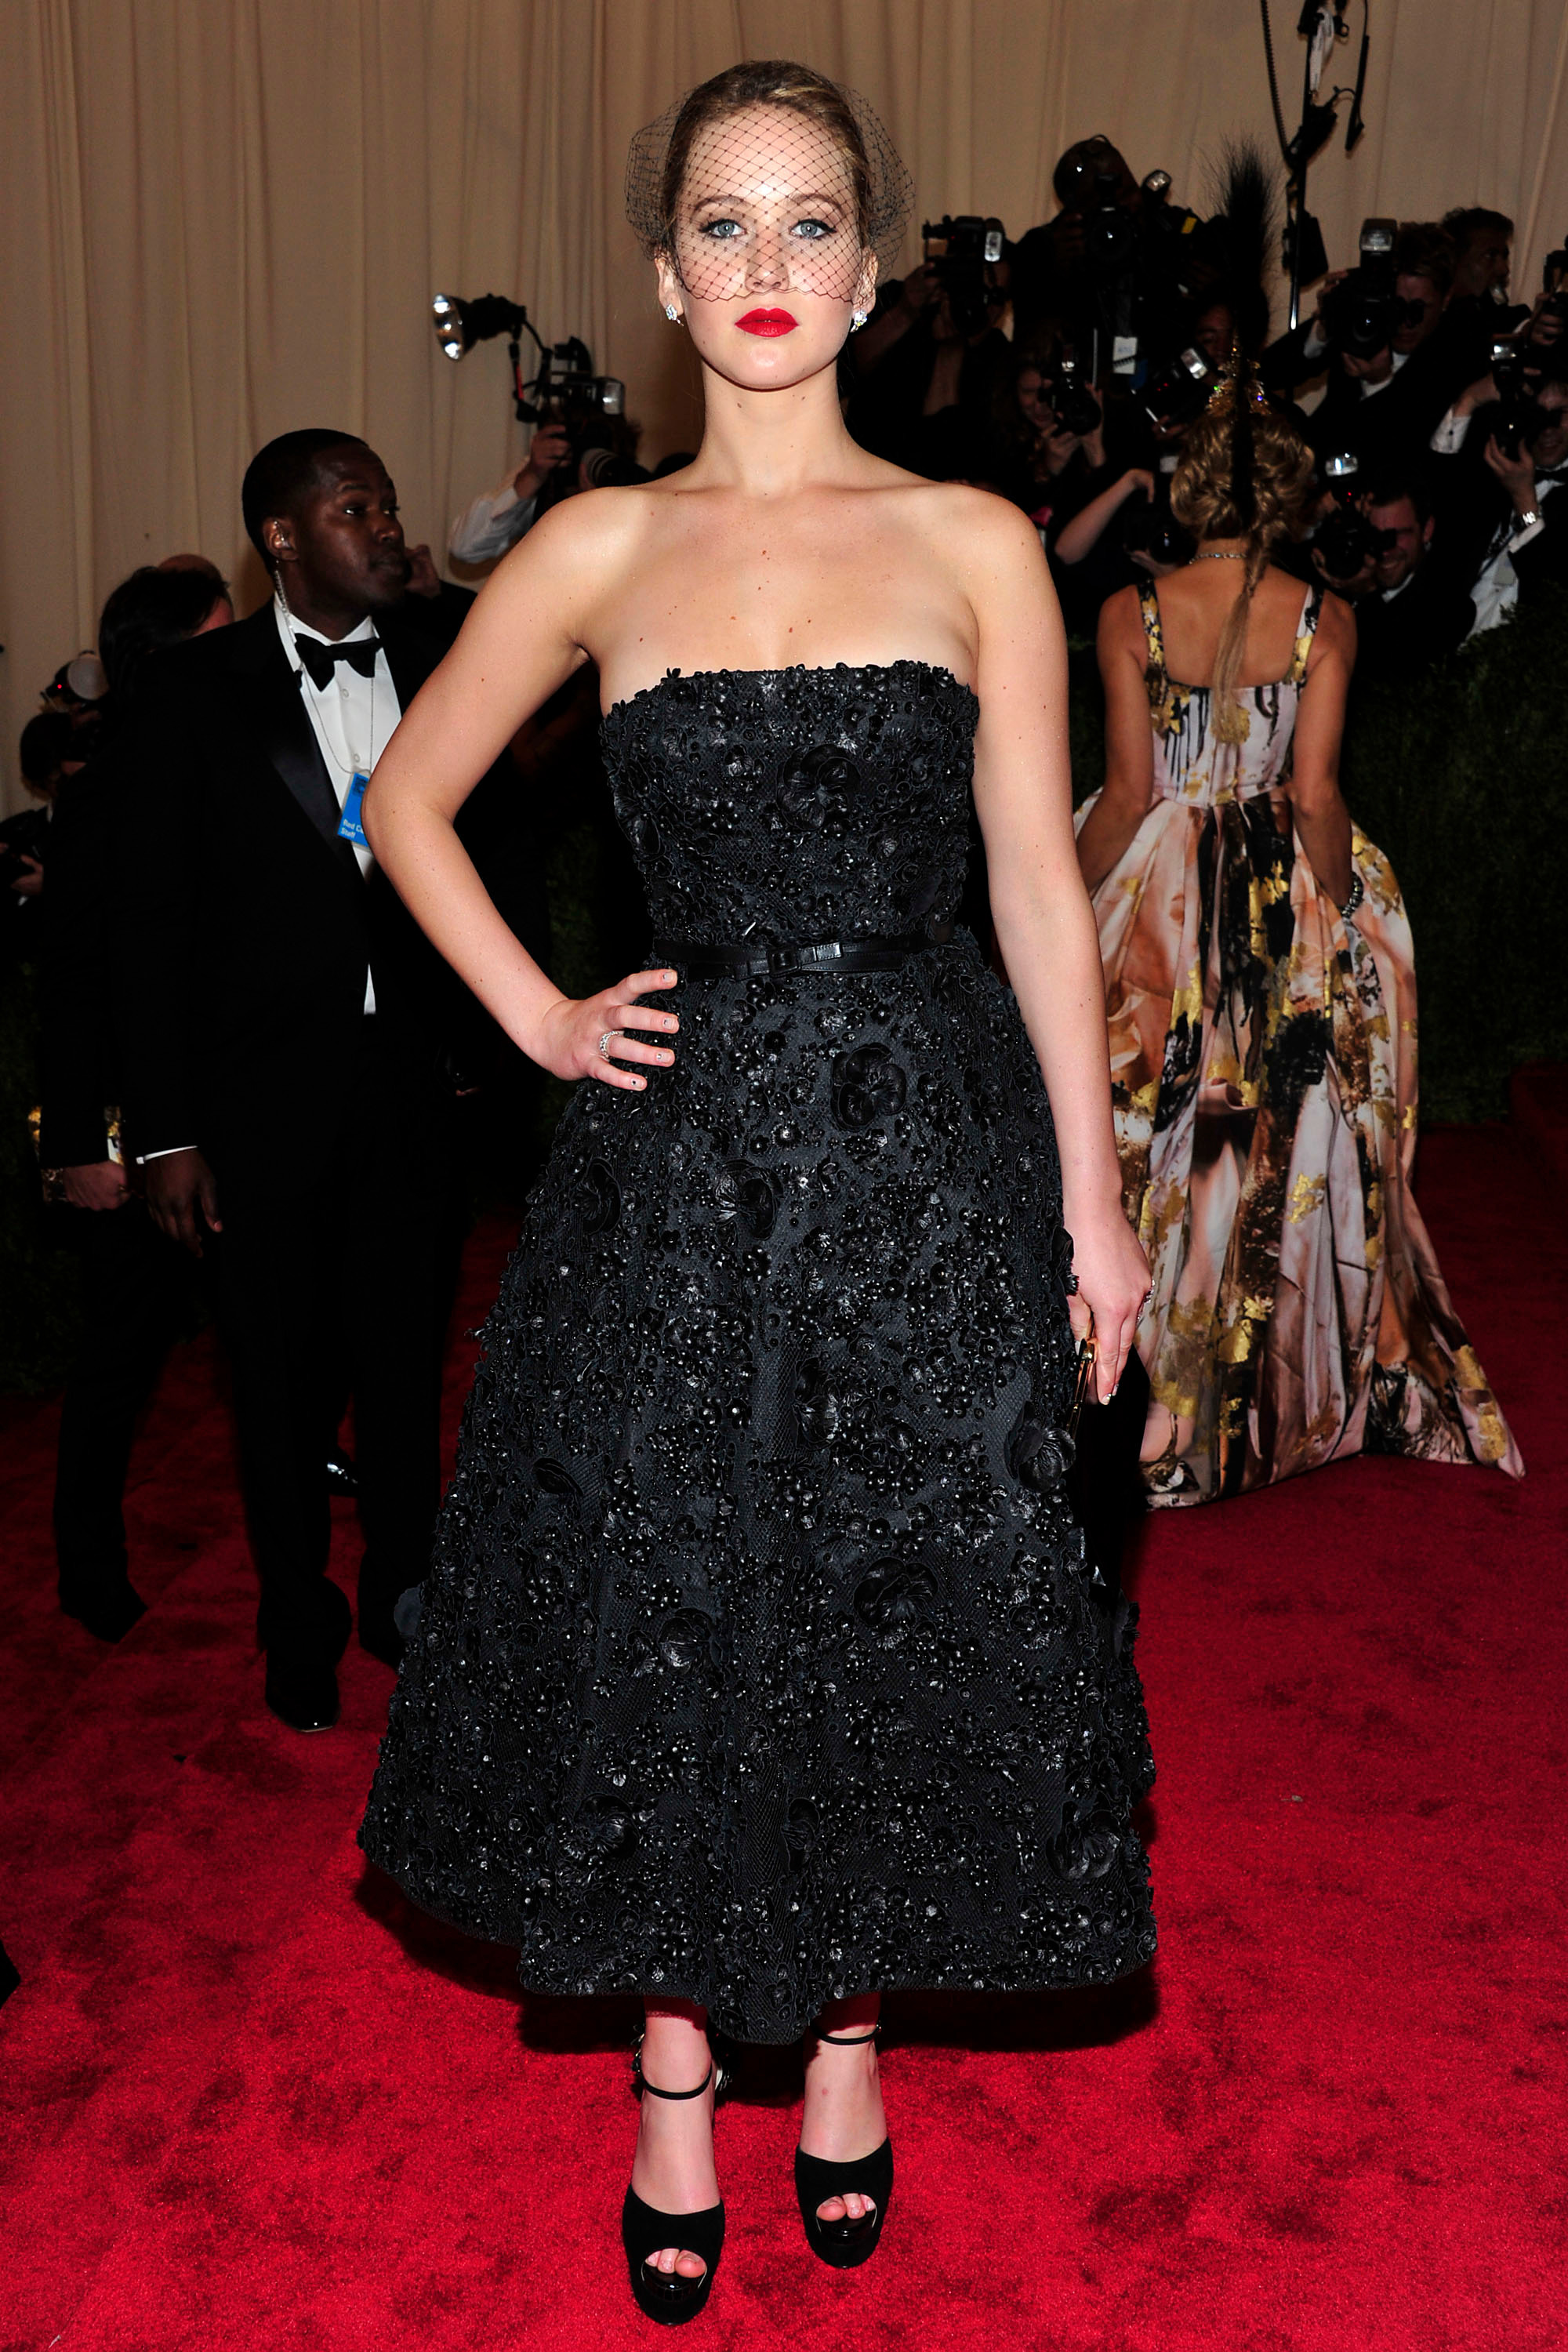 """Jennifer Lawrence attends """"PUNK: Chaos to Couture"""" Costume Institute Gala at the Metropolitan Museum of Art in New York City on May 9, 2013."""